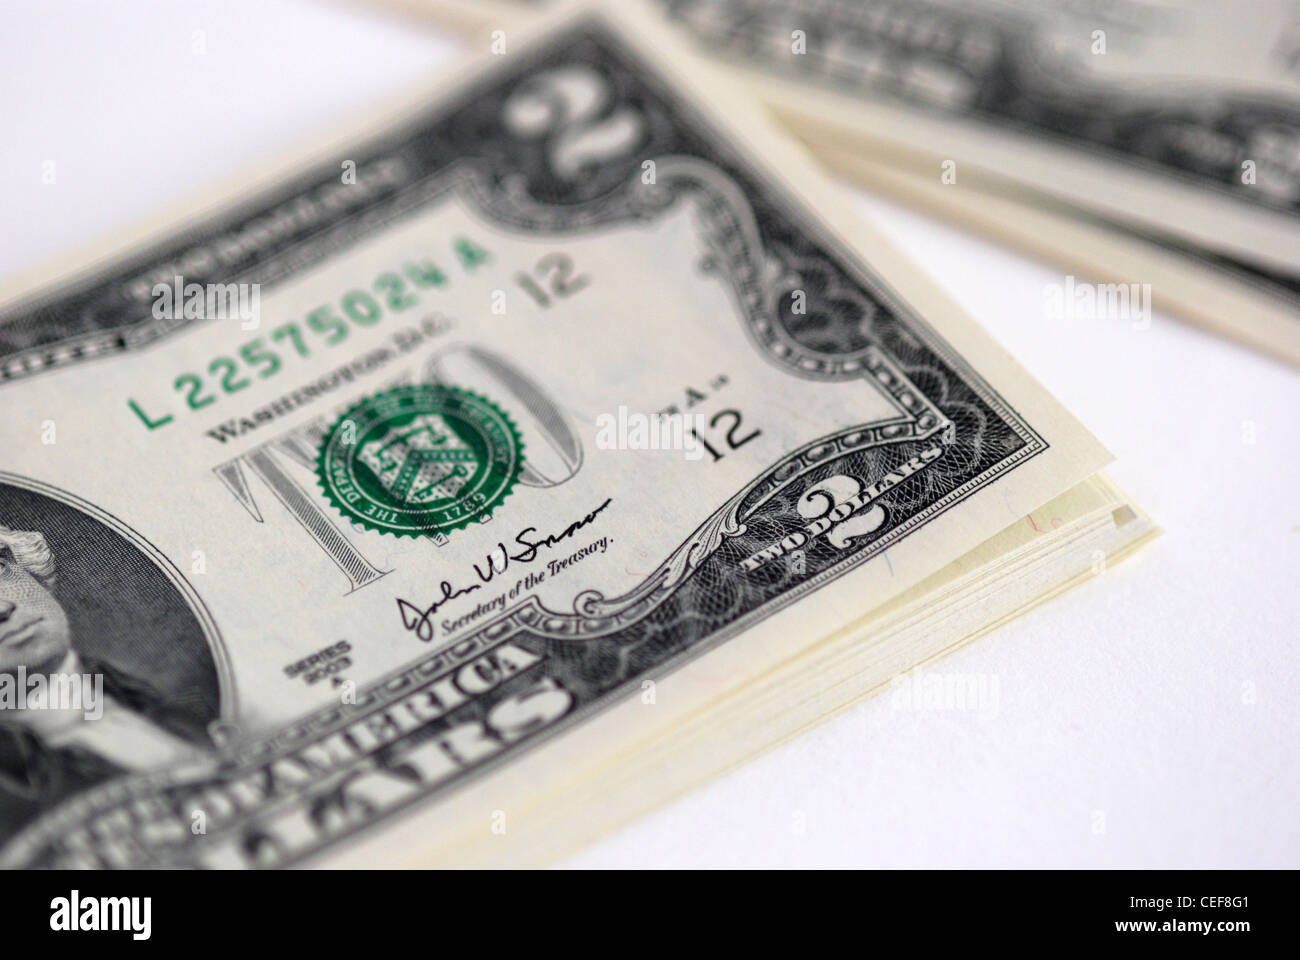 A stack of new USD two dollar bills, on white background - Stock Image